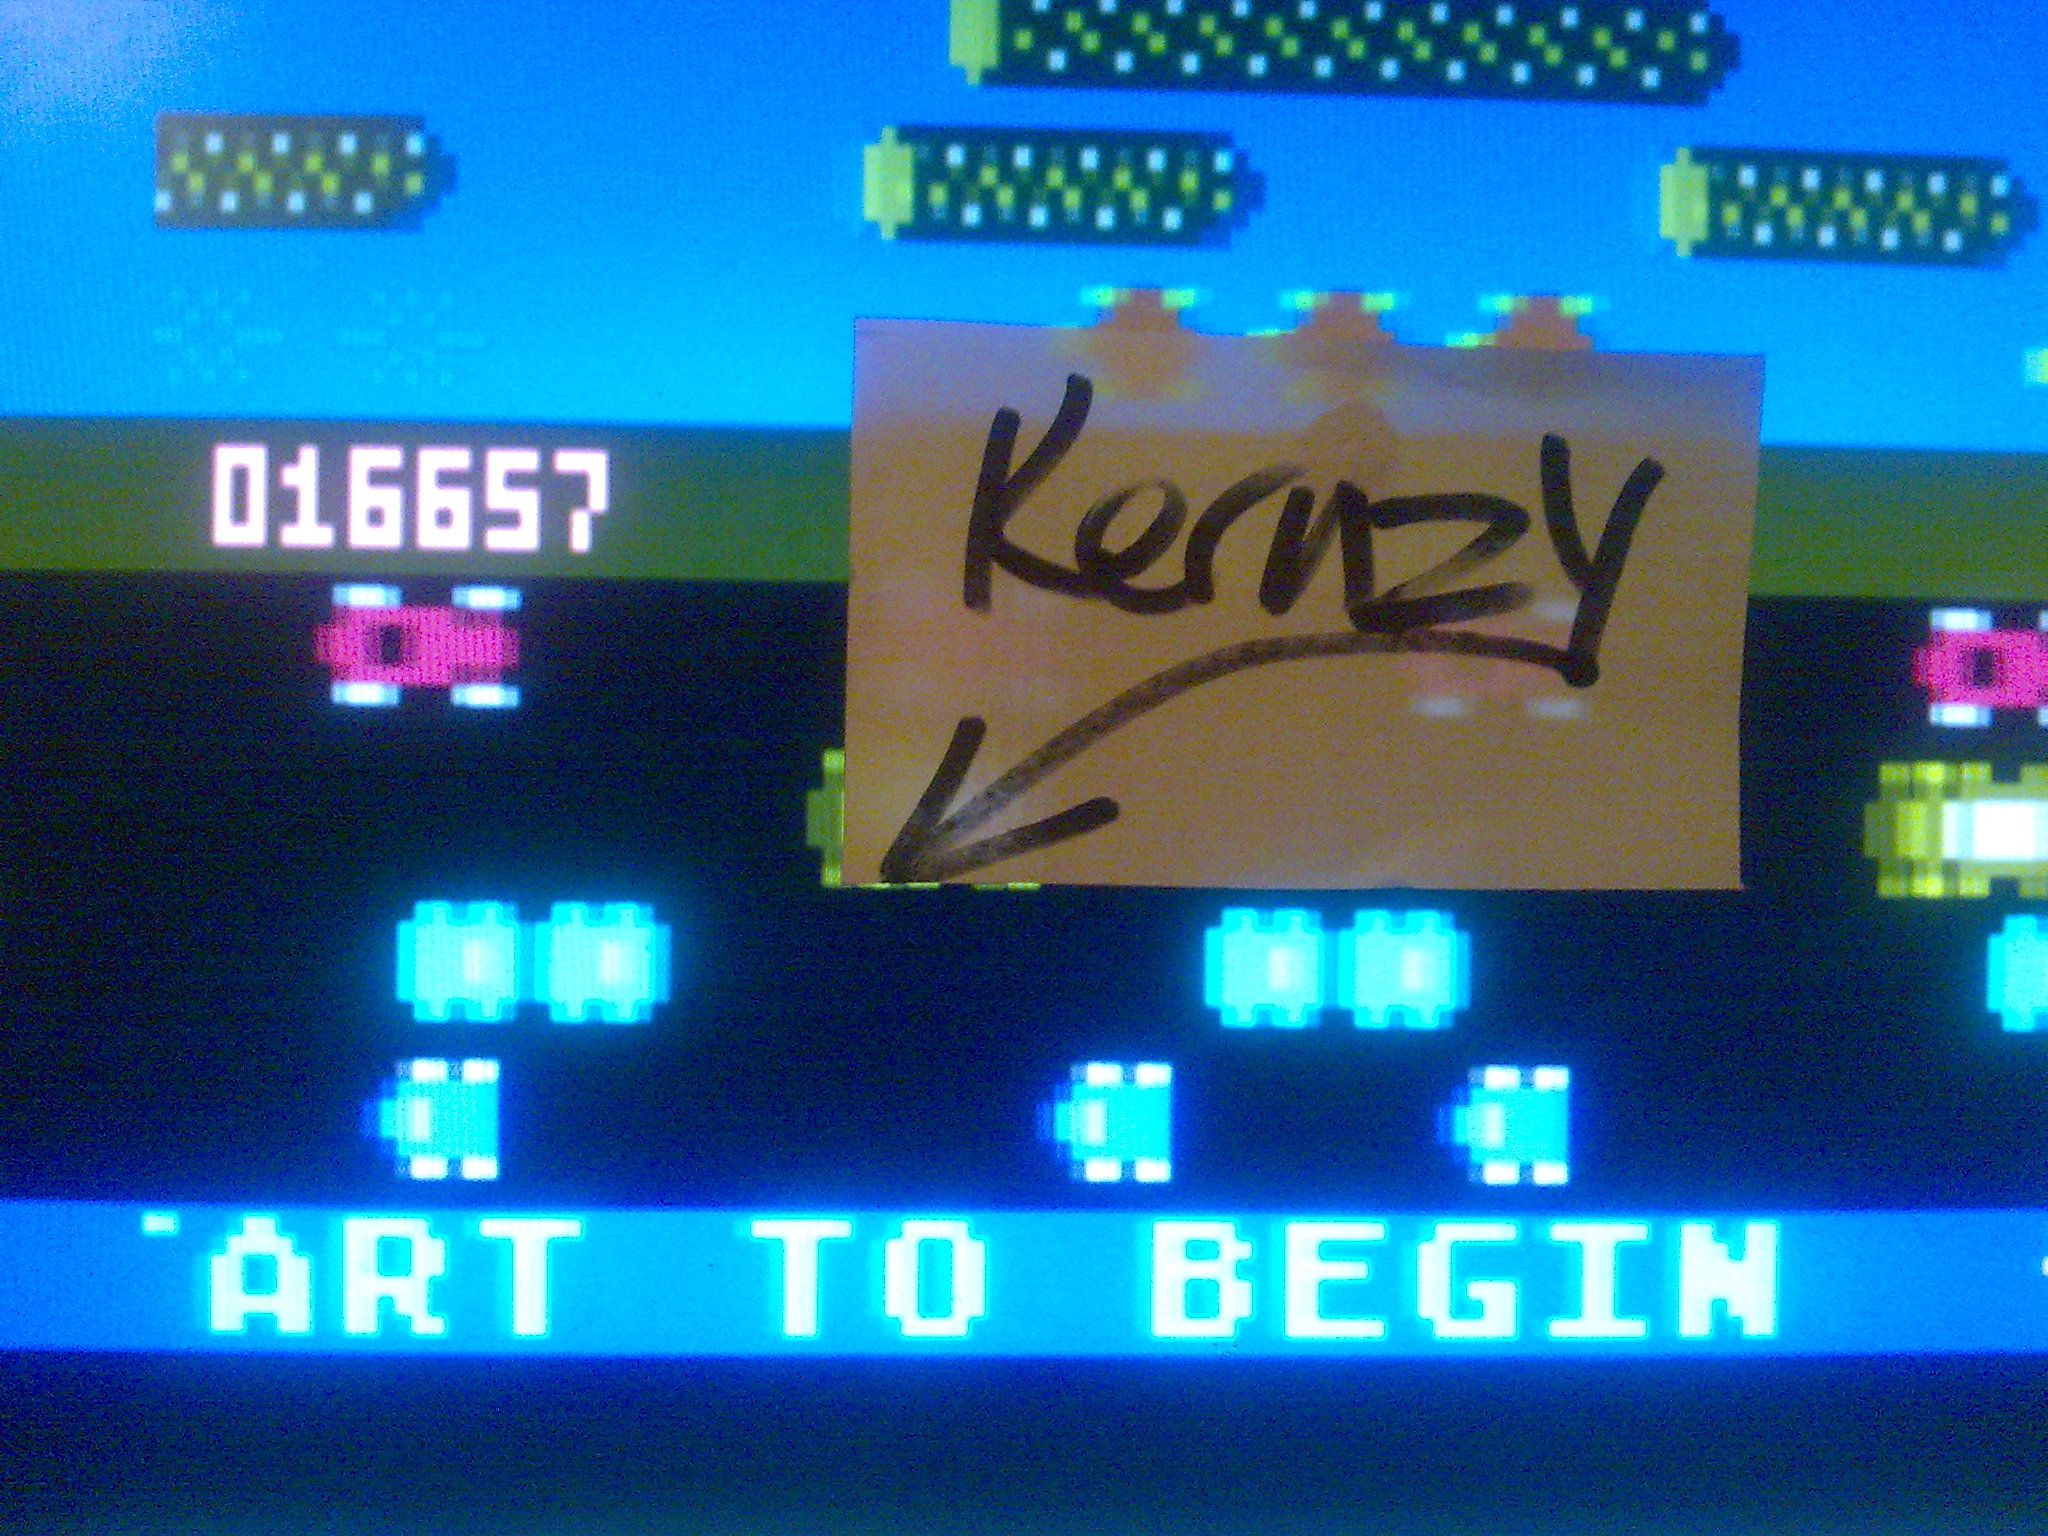 kernzy: Froggie (Atari 400/800/XL/XE Emulated) 16,657 points on 2014-10-17 21:16:11